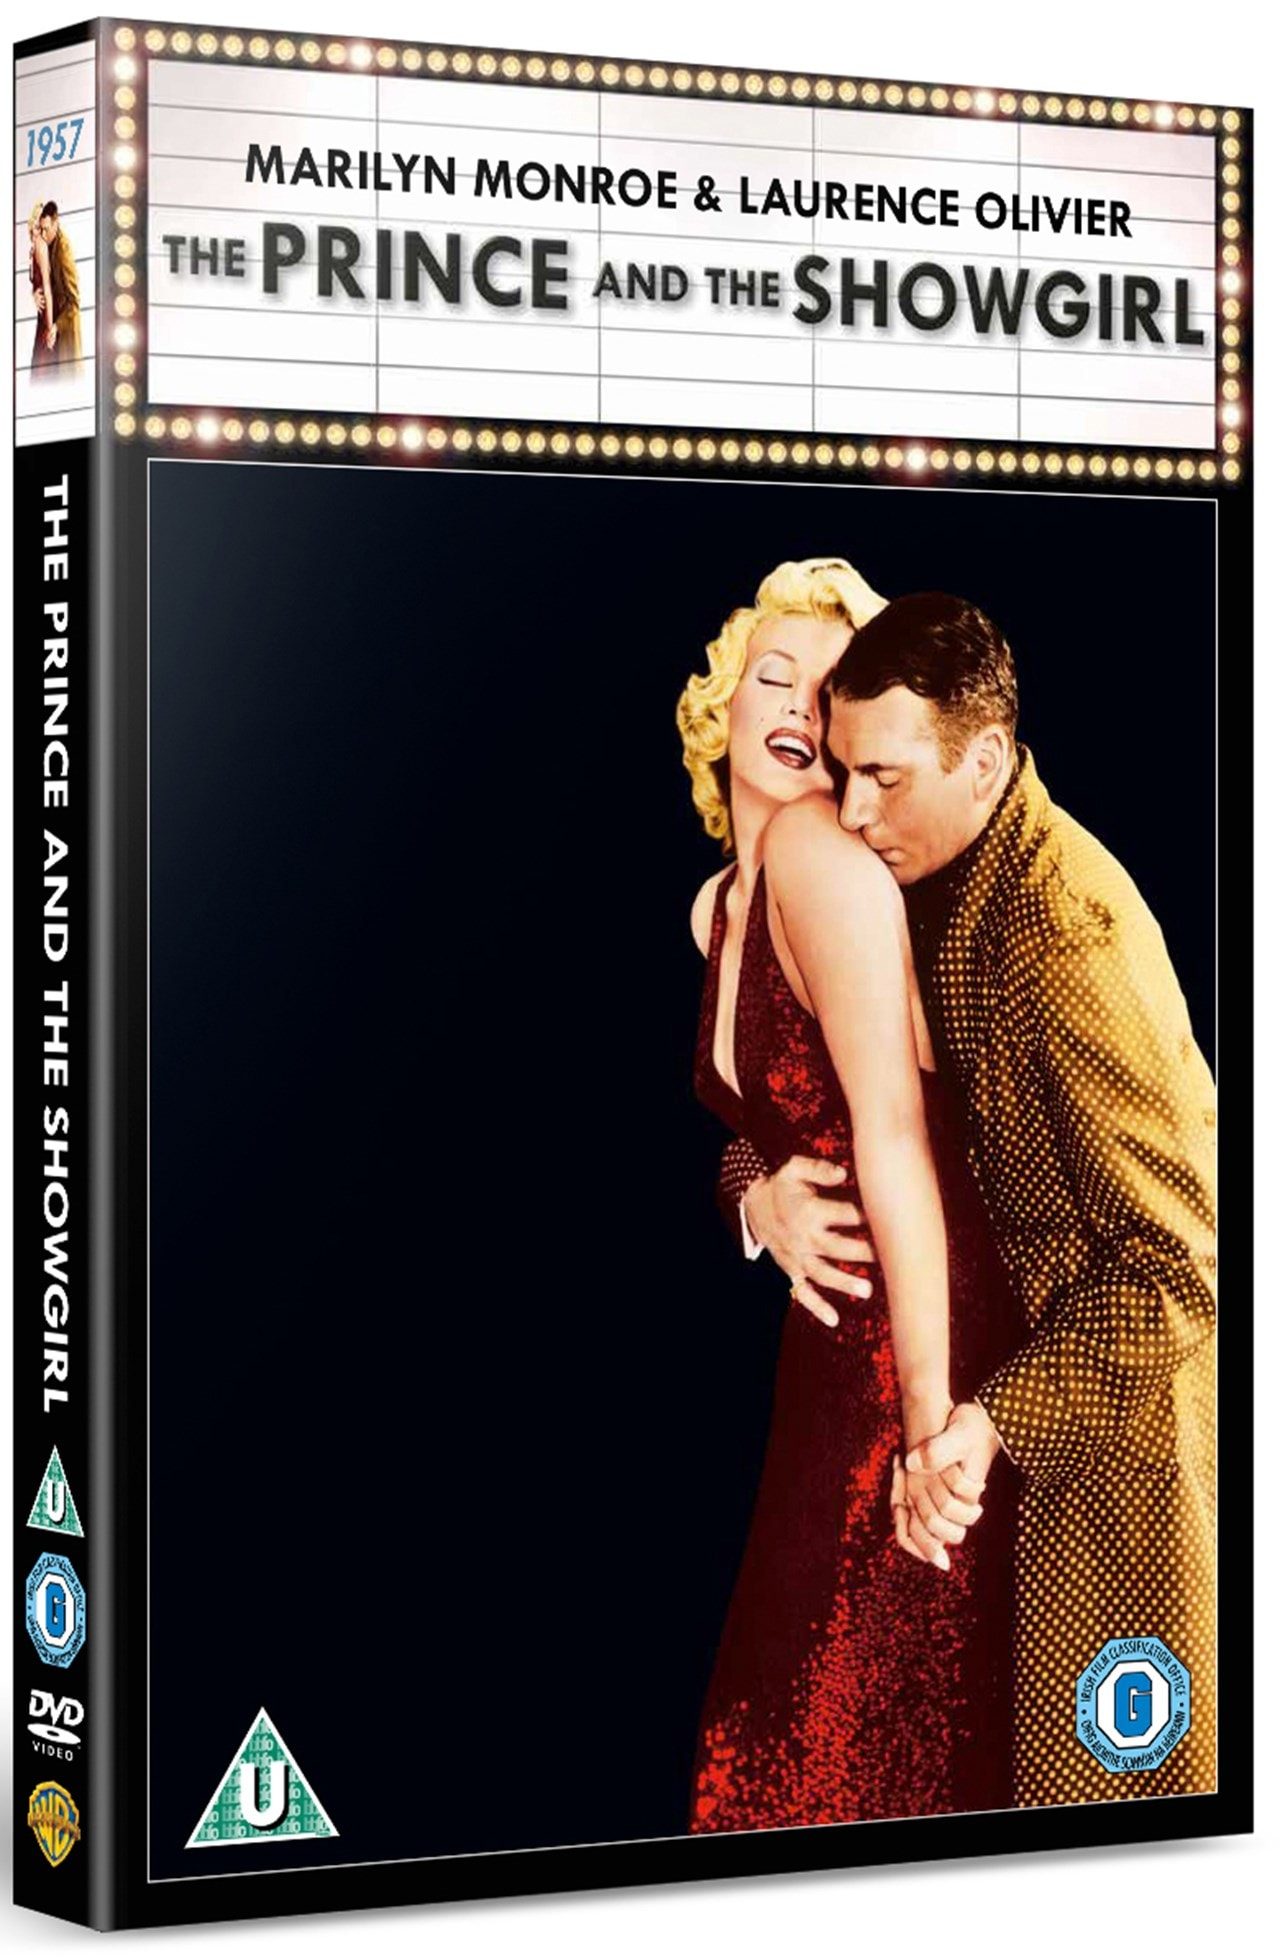 The Prince and the Showgirl - 4